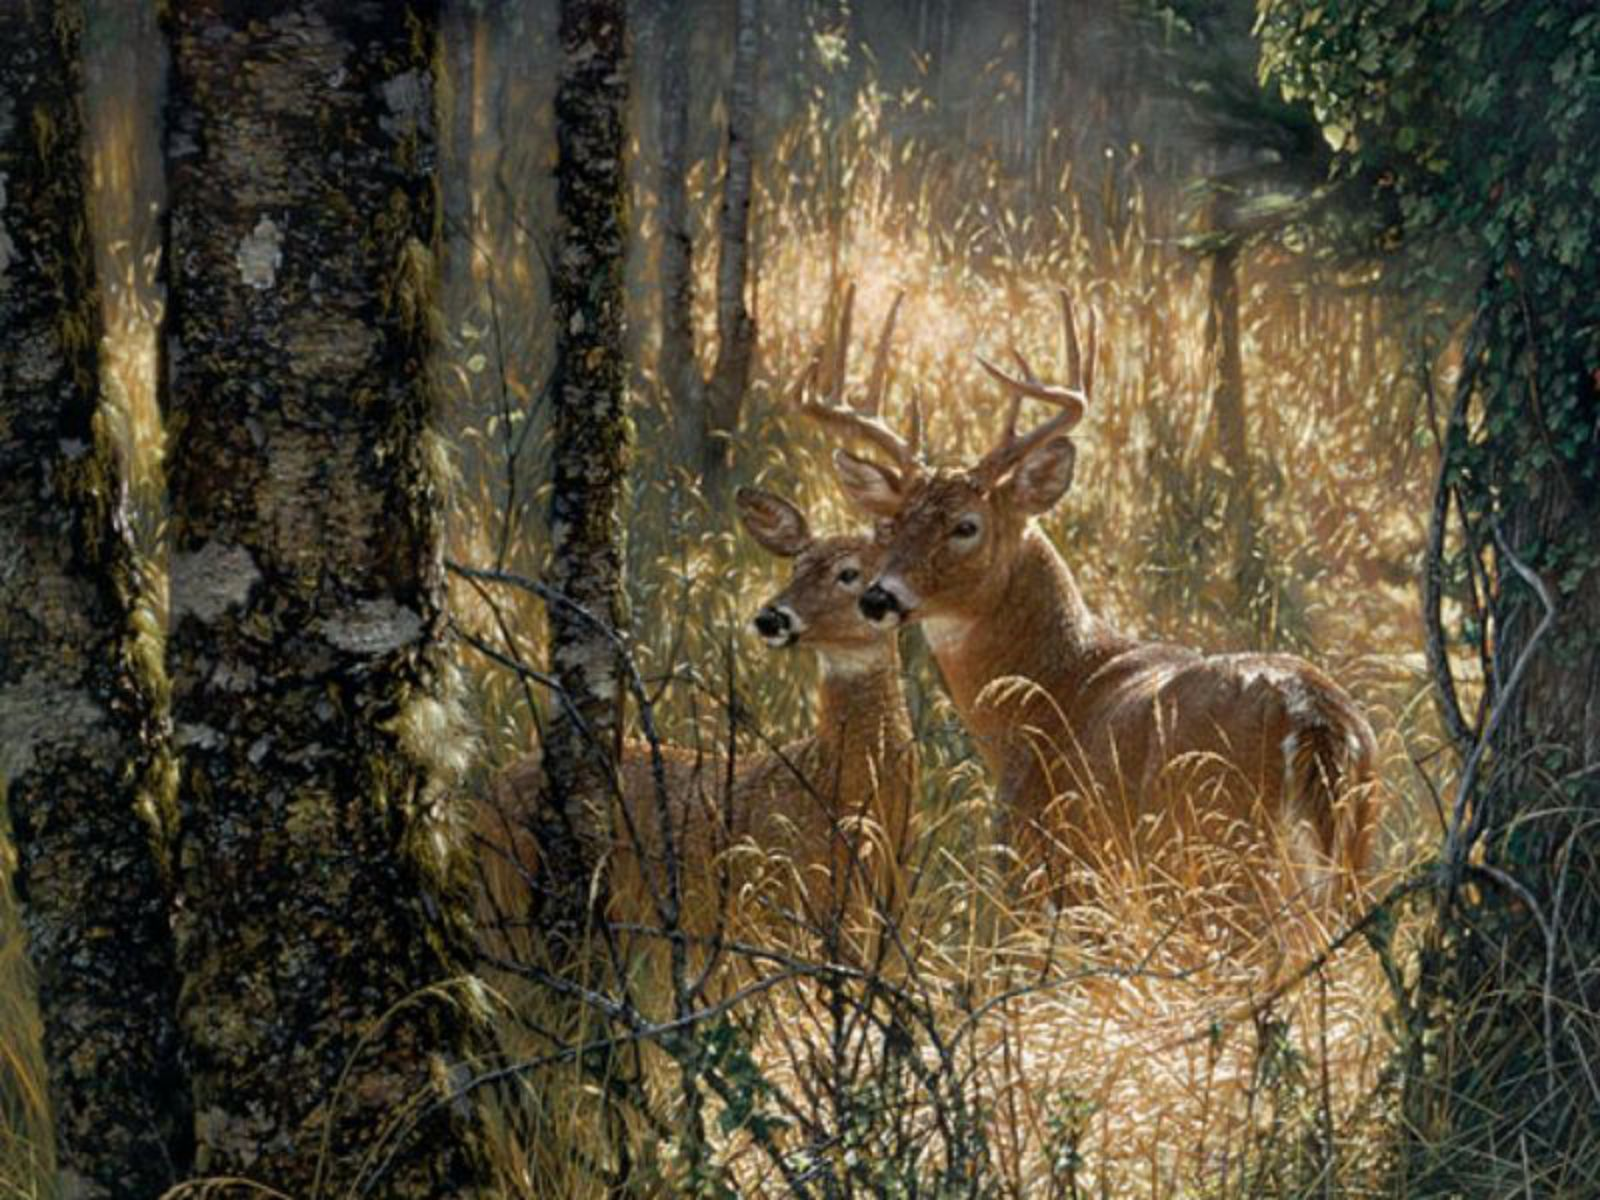 Download free deer wallpapers for your mobile phone by relevance download free deer wallpapers for your mobile phone by relevance voltagebd Images